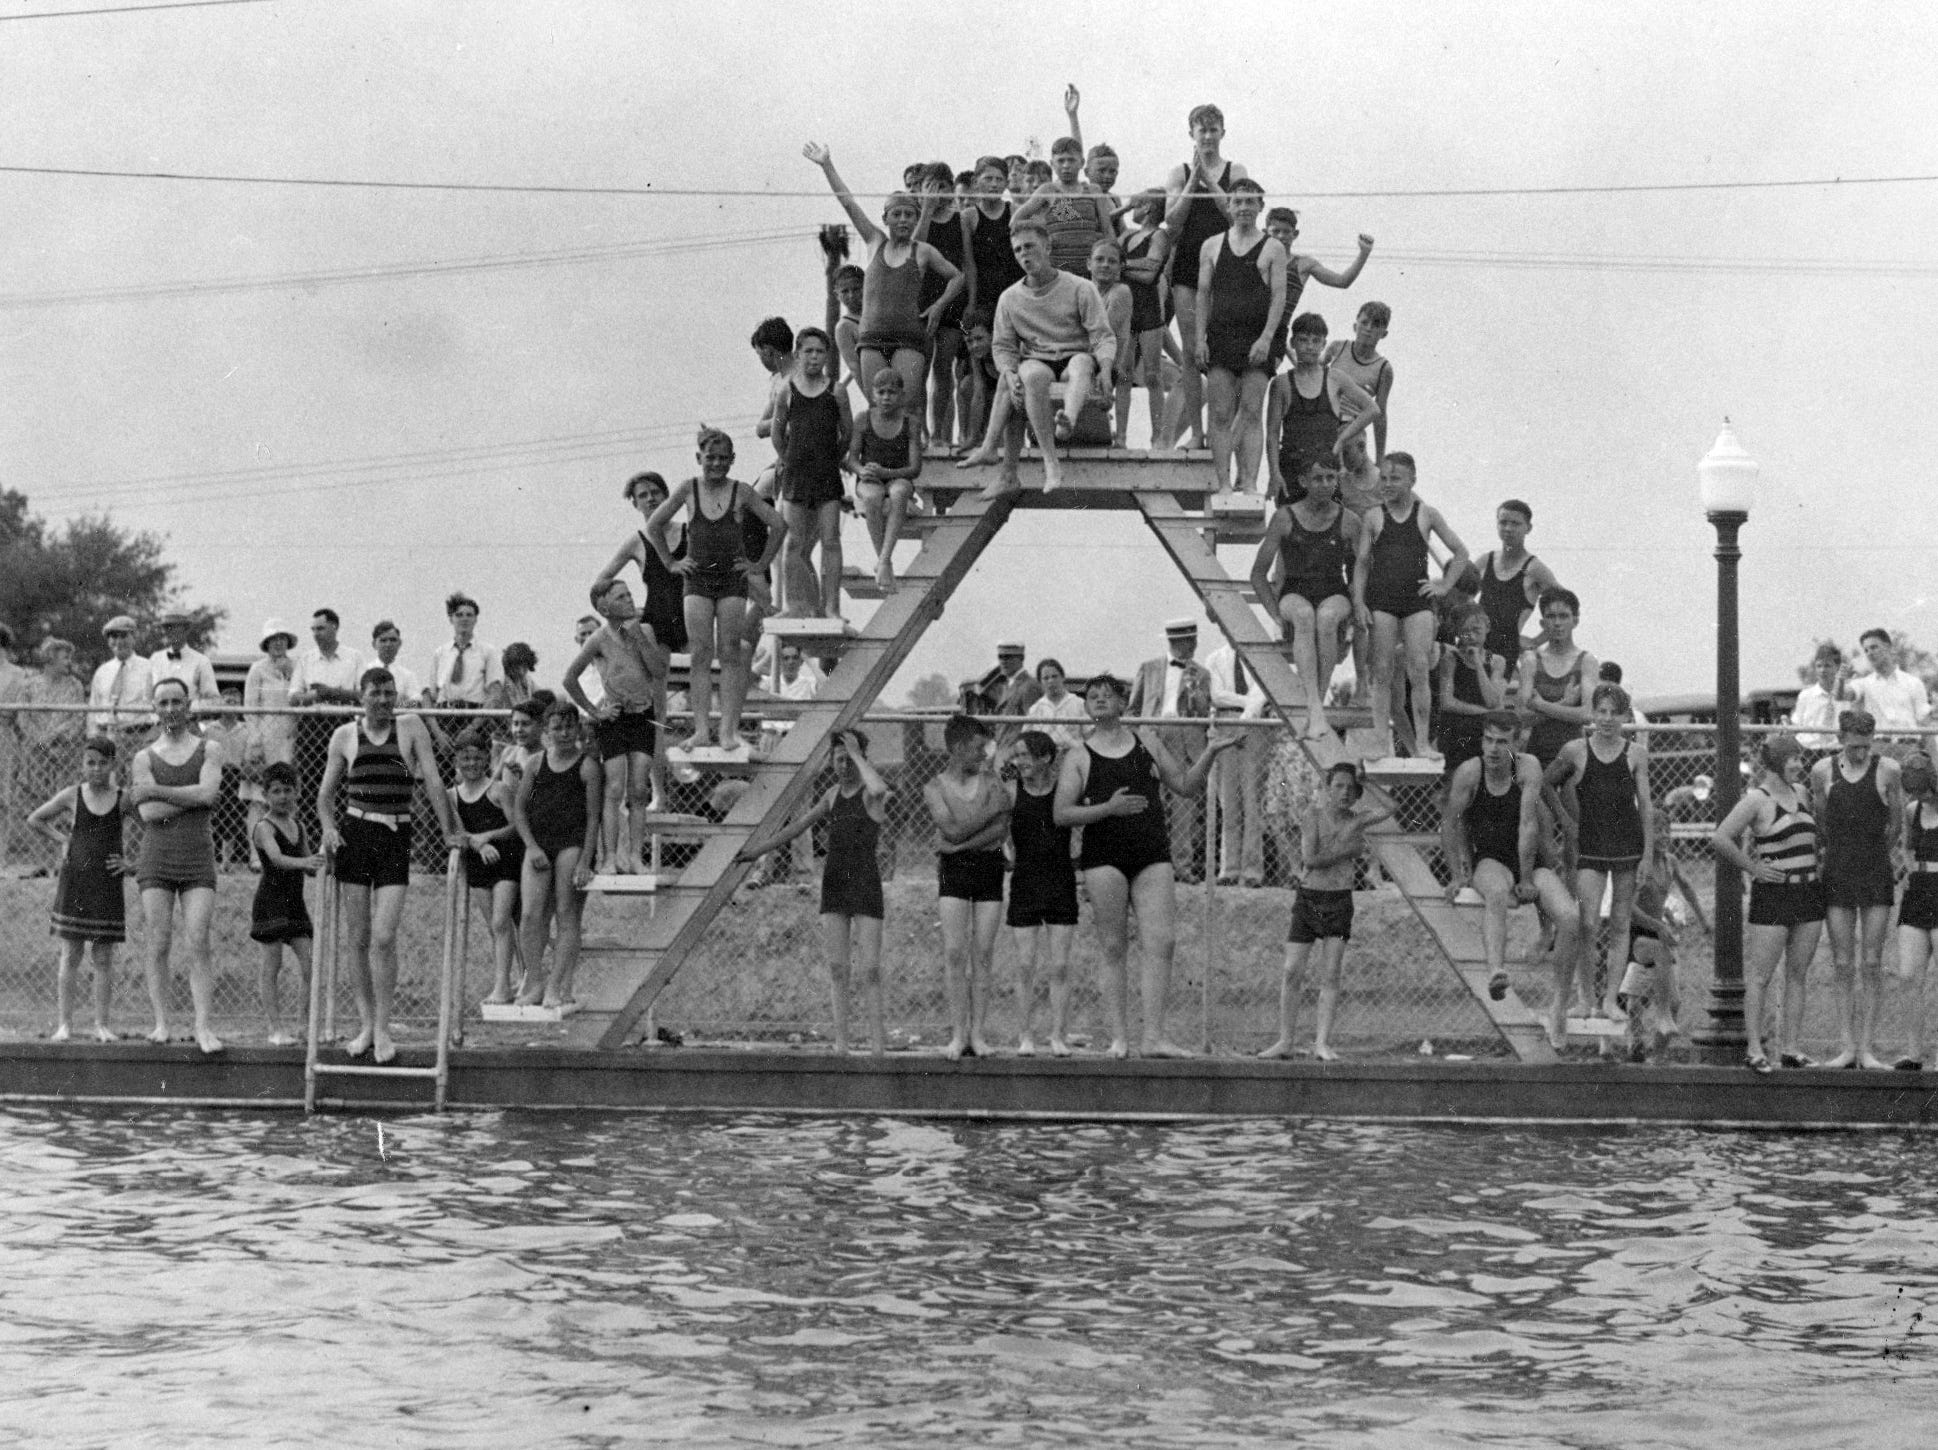 Swimmers pose on the diving platform of the Ellenberger Park swimming pool in 1929.